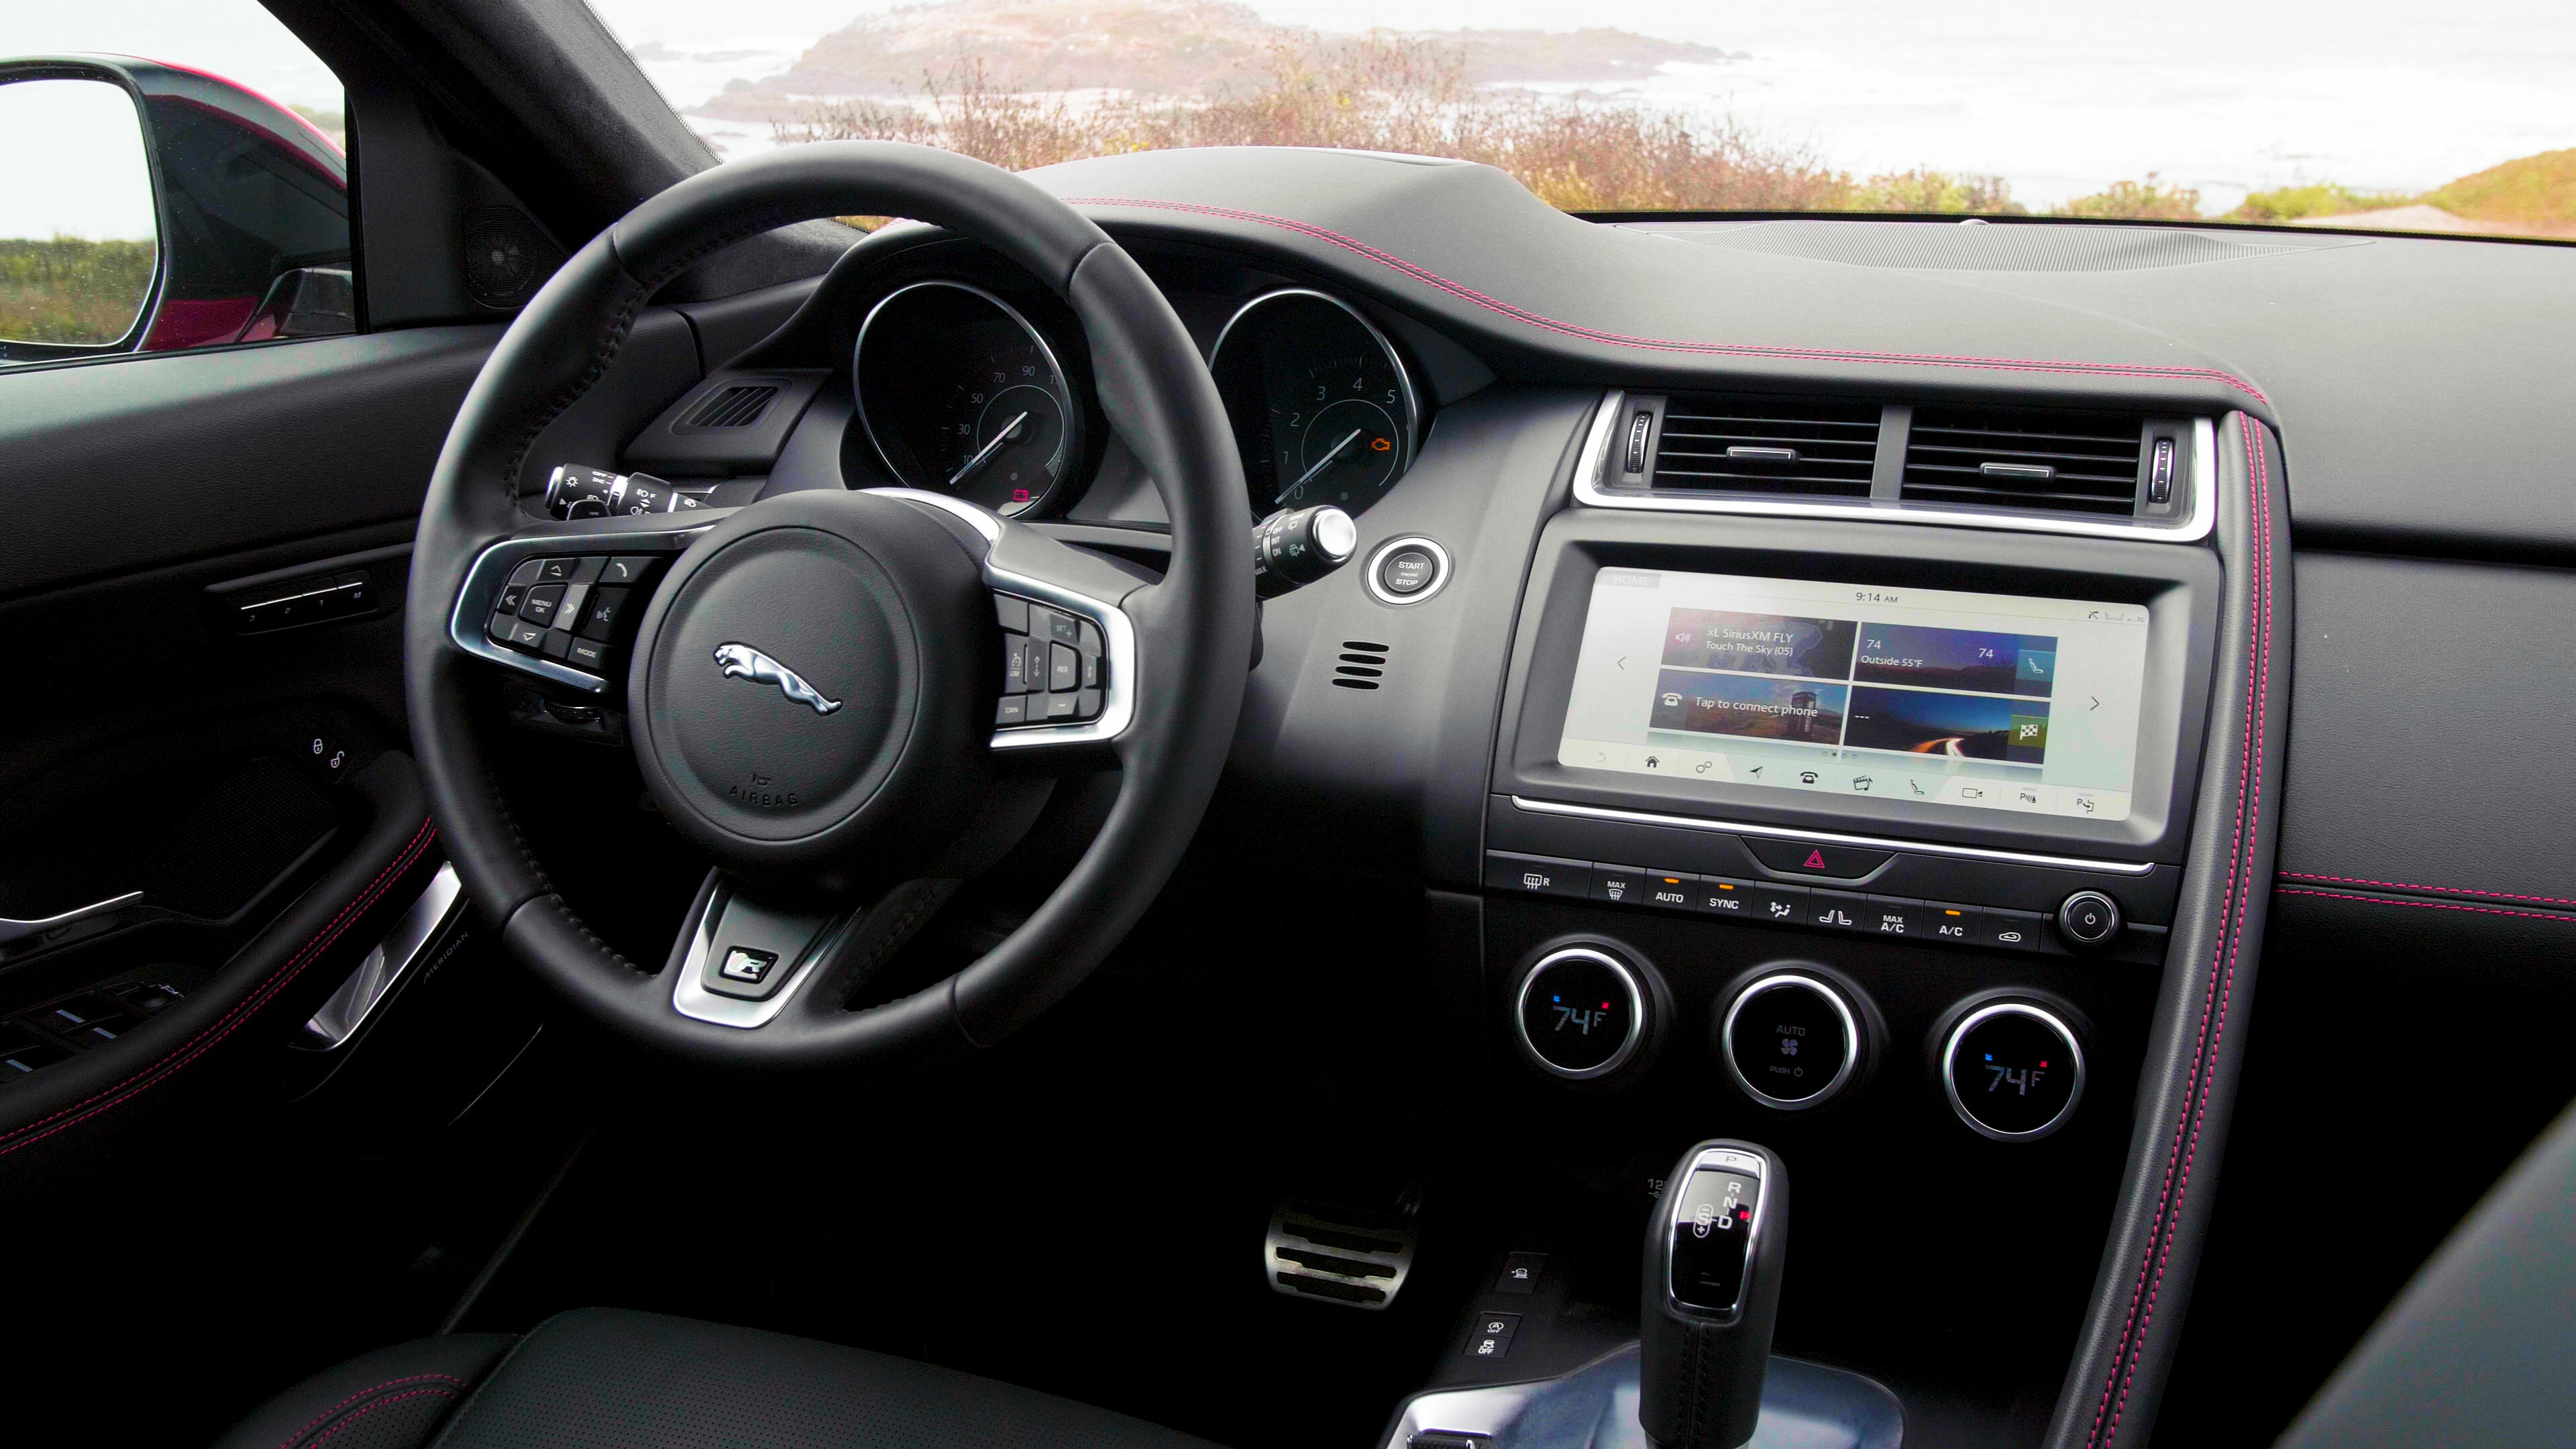 Video: Hands-on with Jaguar InControl Touch Pro in the 2018 E-Pace